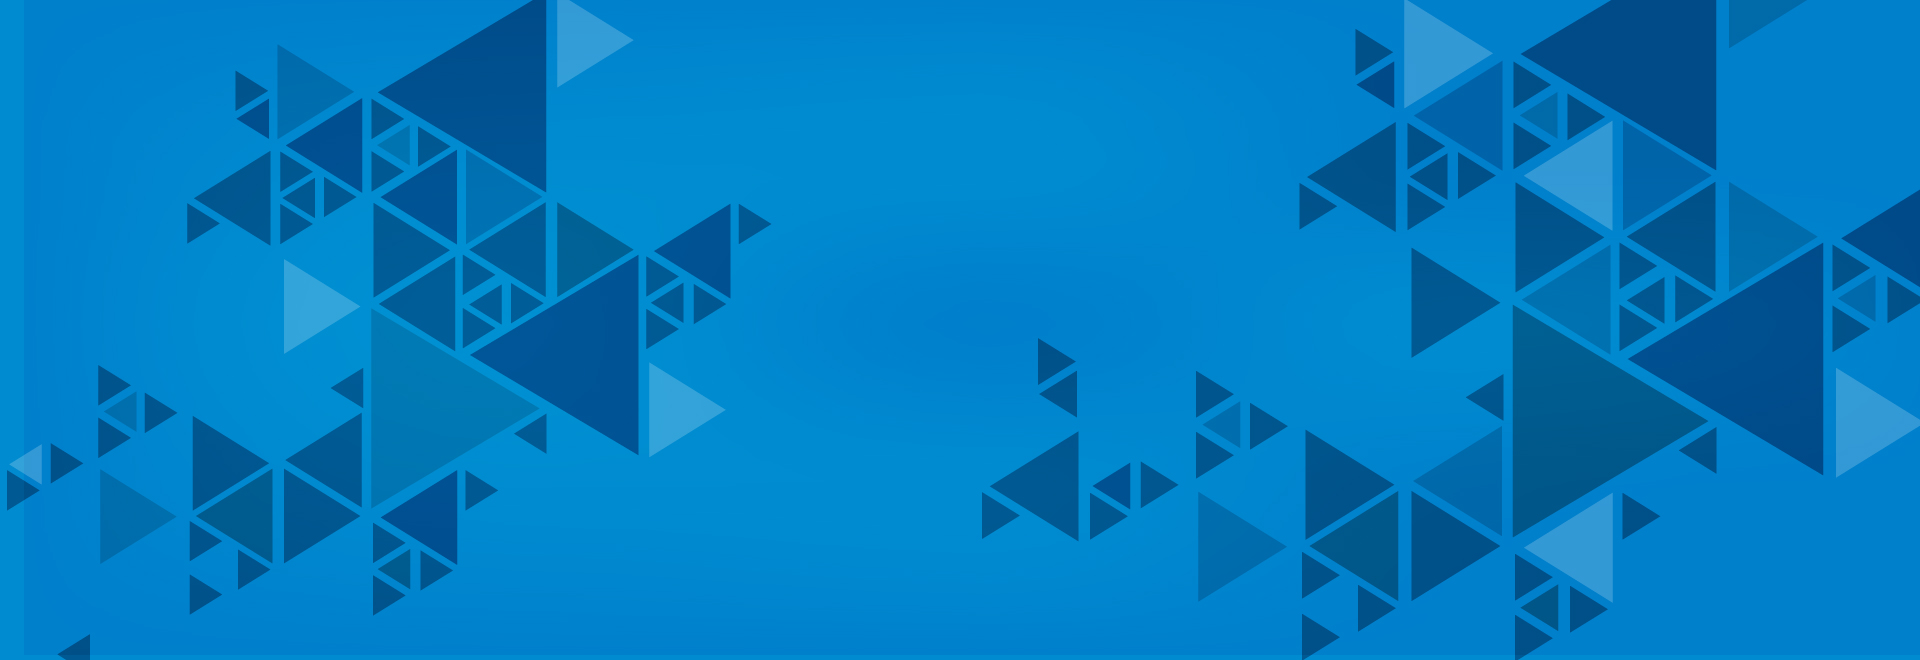 blog banner in a blue background with blue triangular design